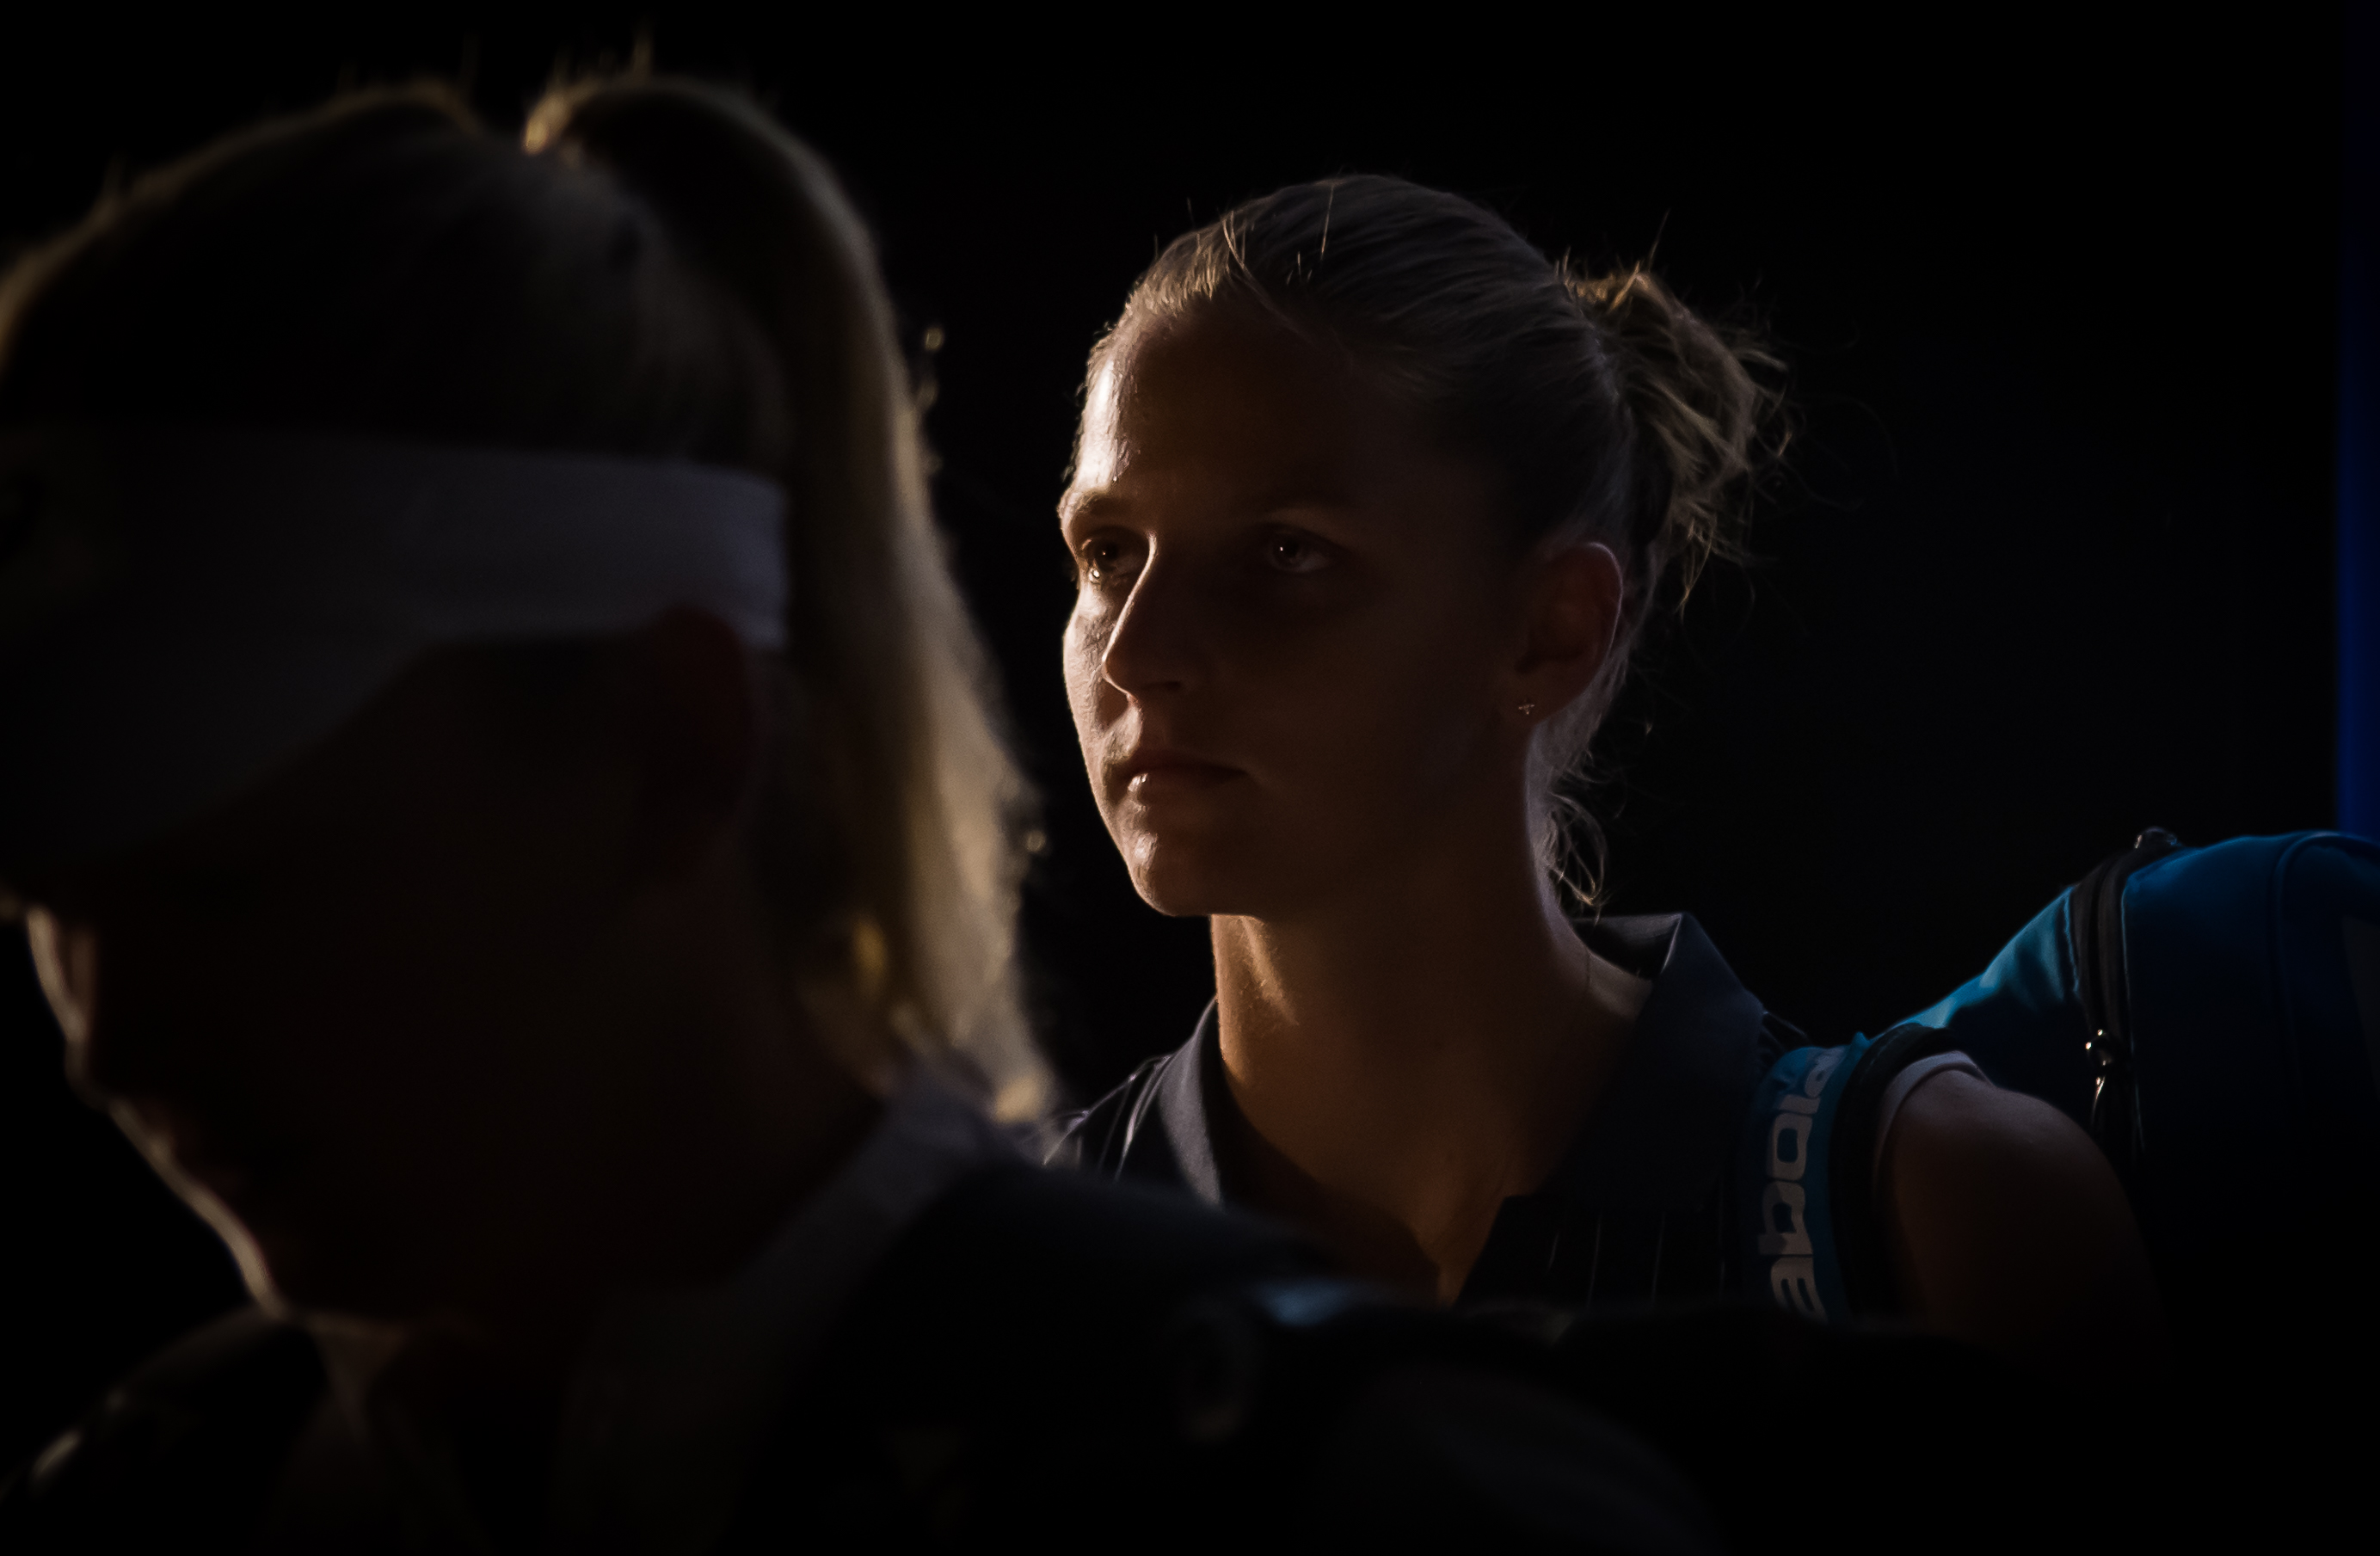 Karolina Pliskova before the final of the Porsche Tennis Grand Prix, WTA Stuttgart 2018